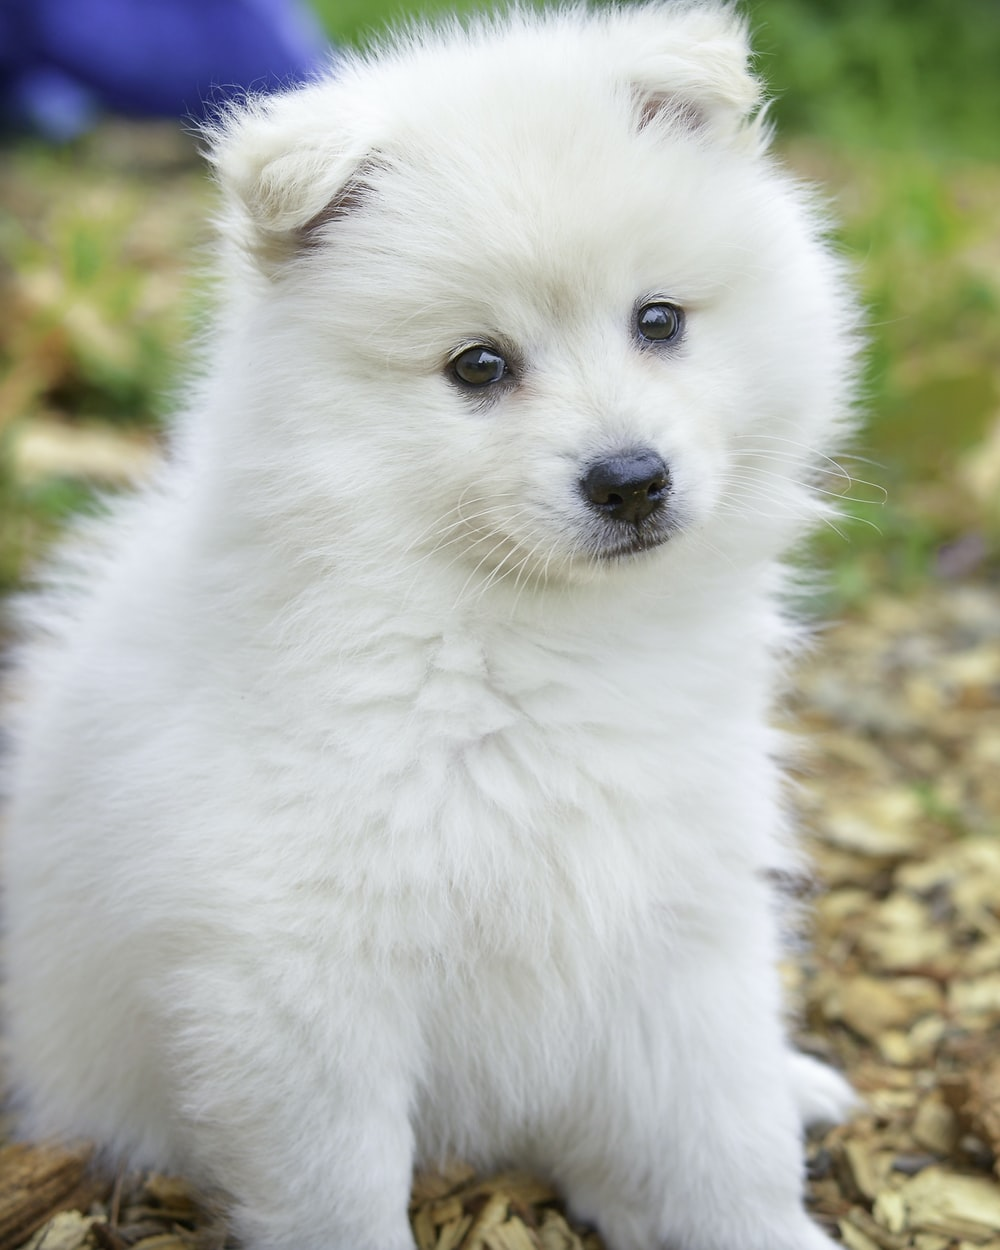 White Fluffy Dog Pictures Download Free Images On Unsplash